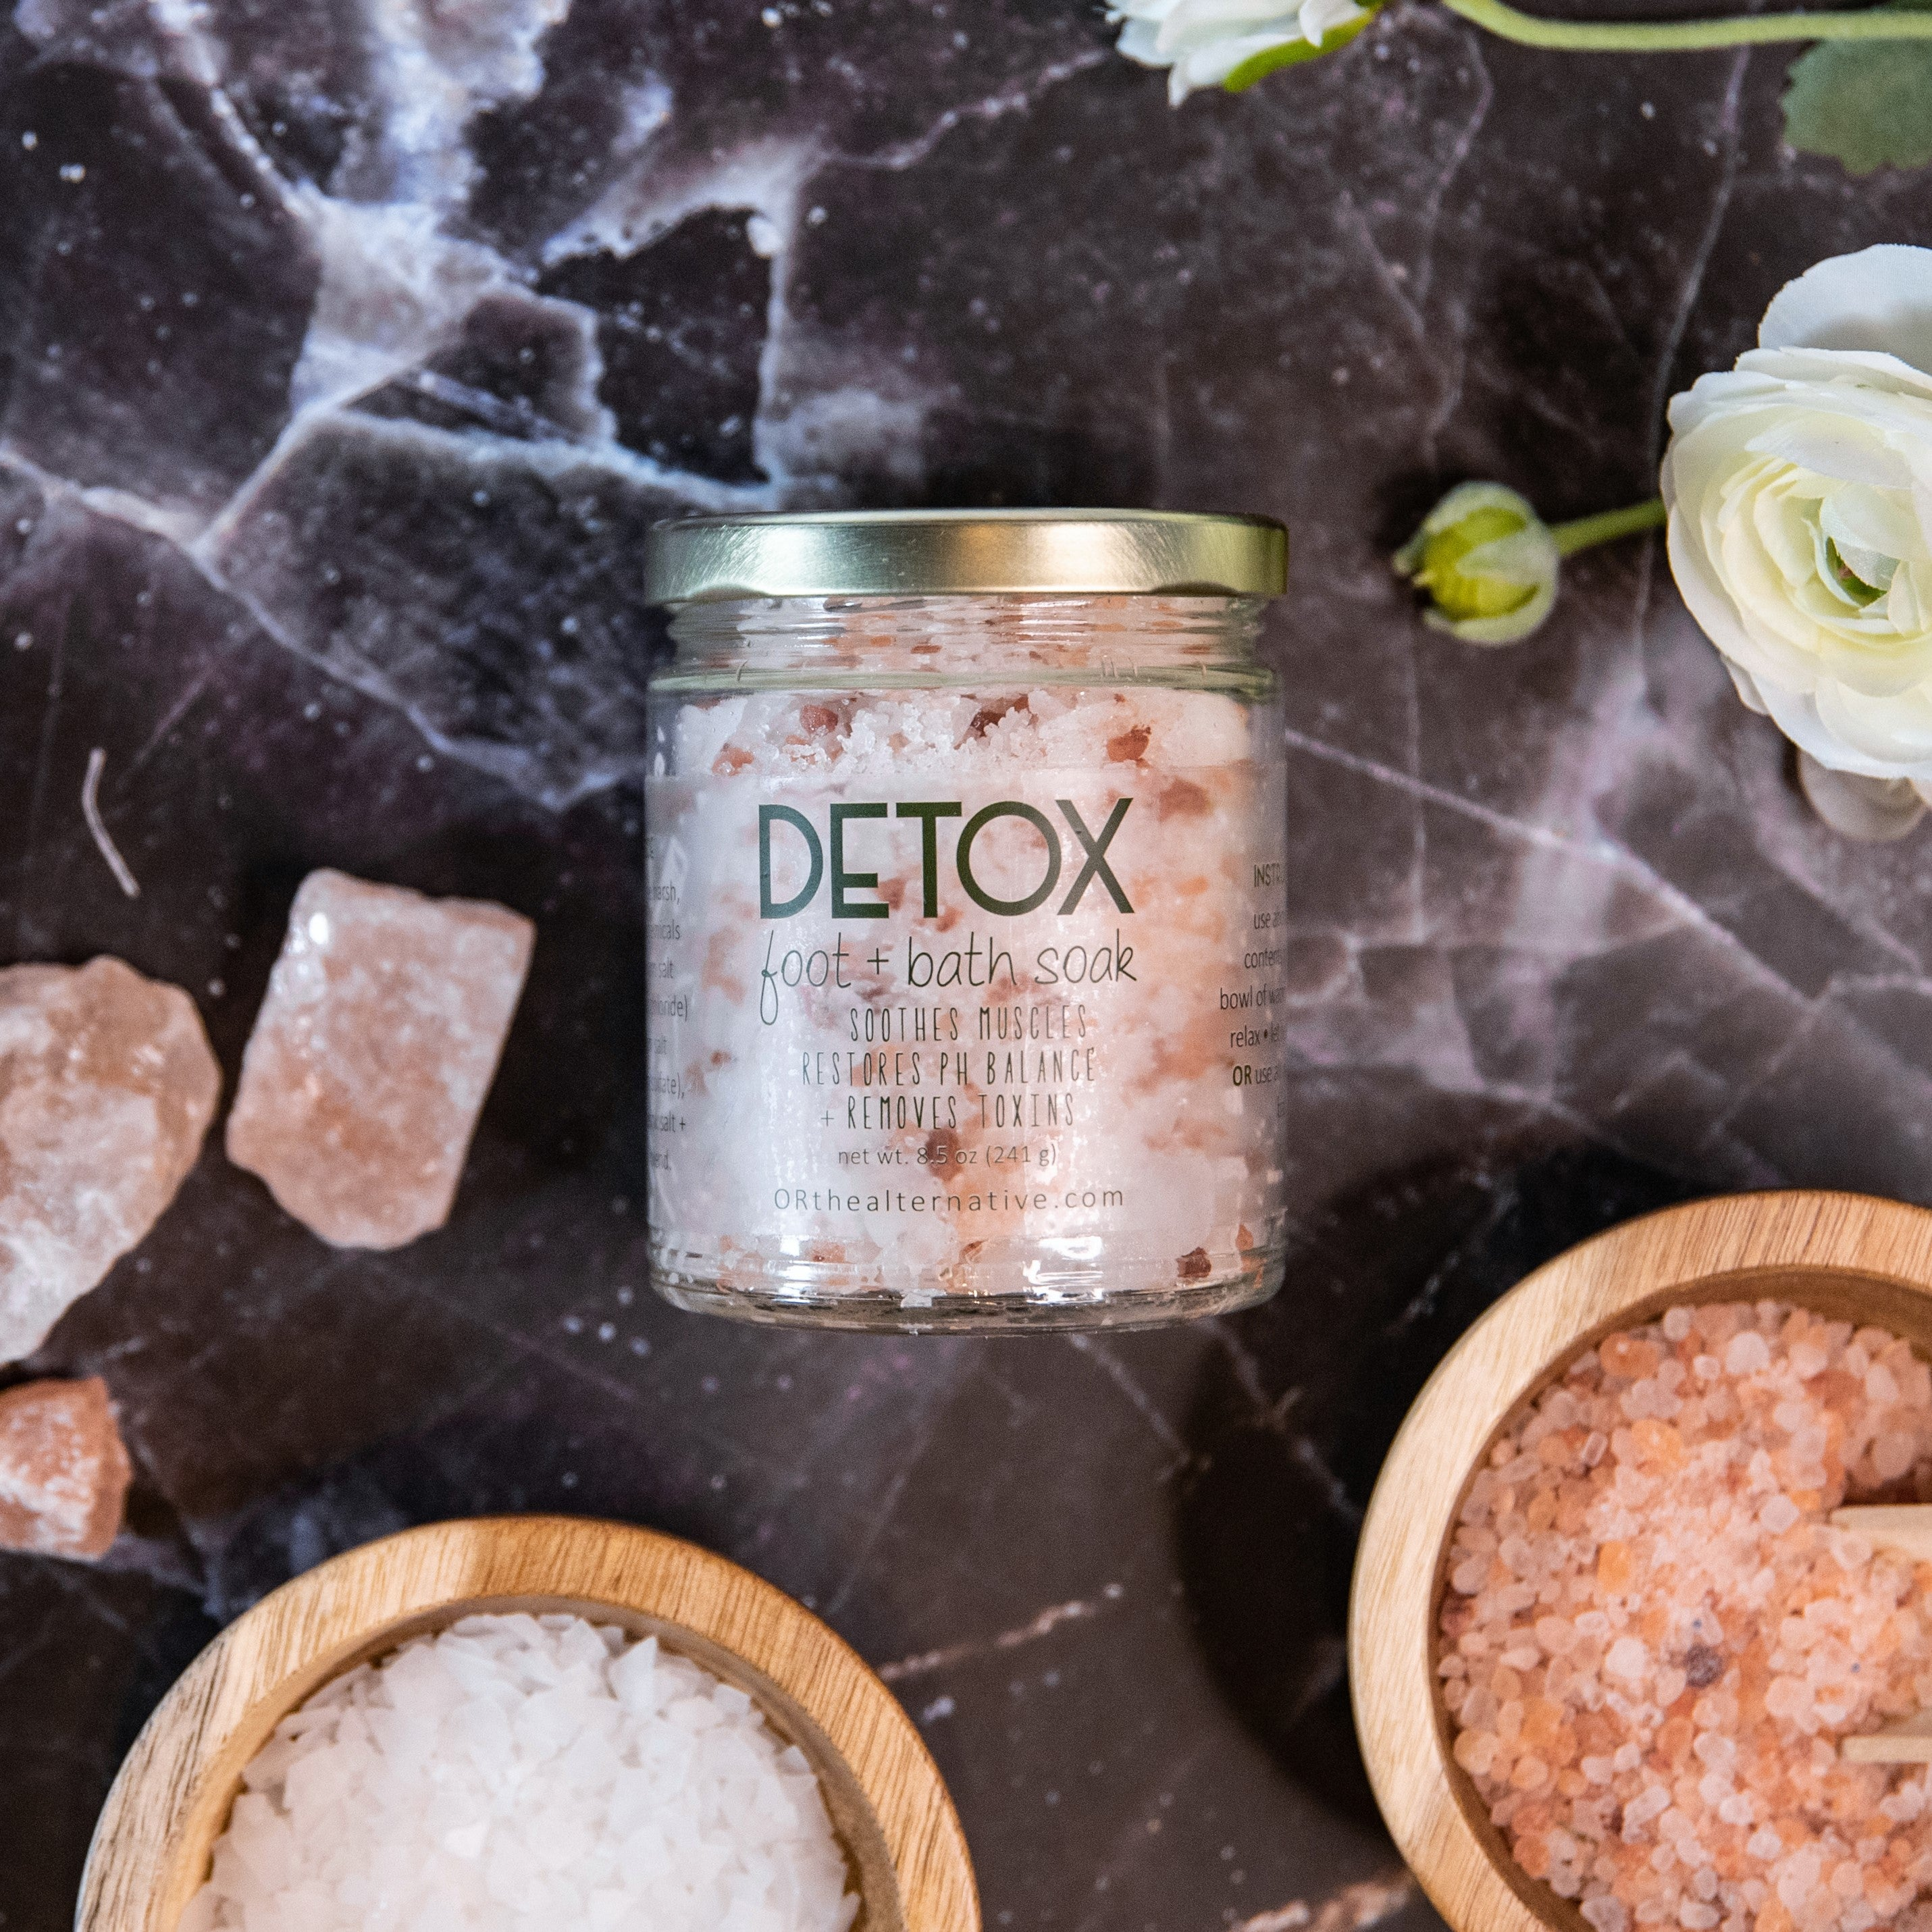 DETOX foot + bath soak